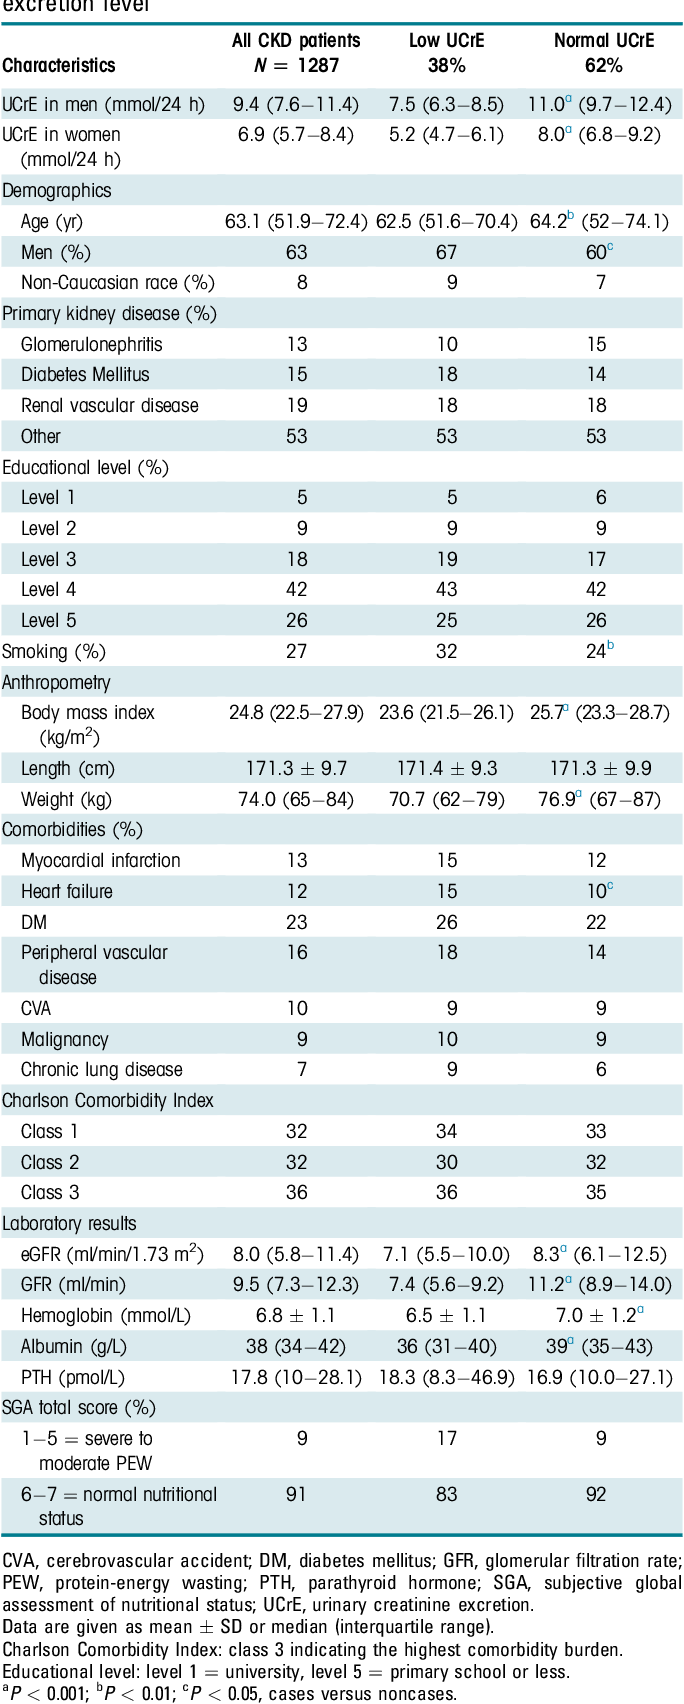 Low Urinary Creatinine Excretion Is Associated With Self